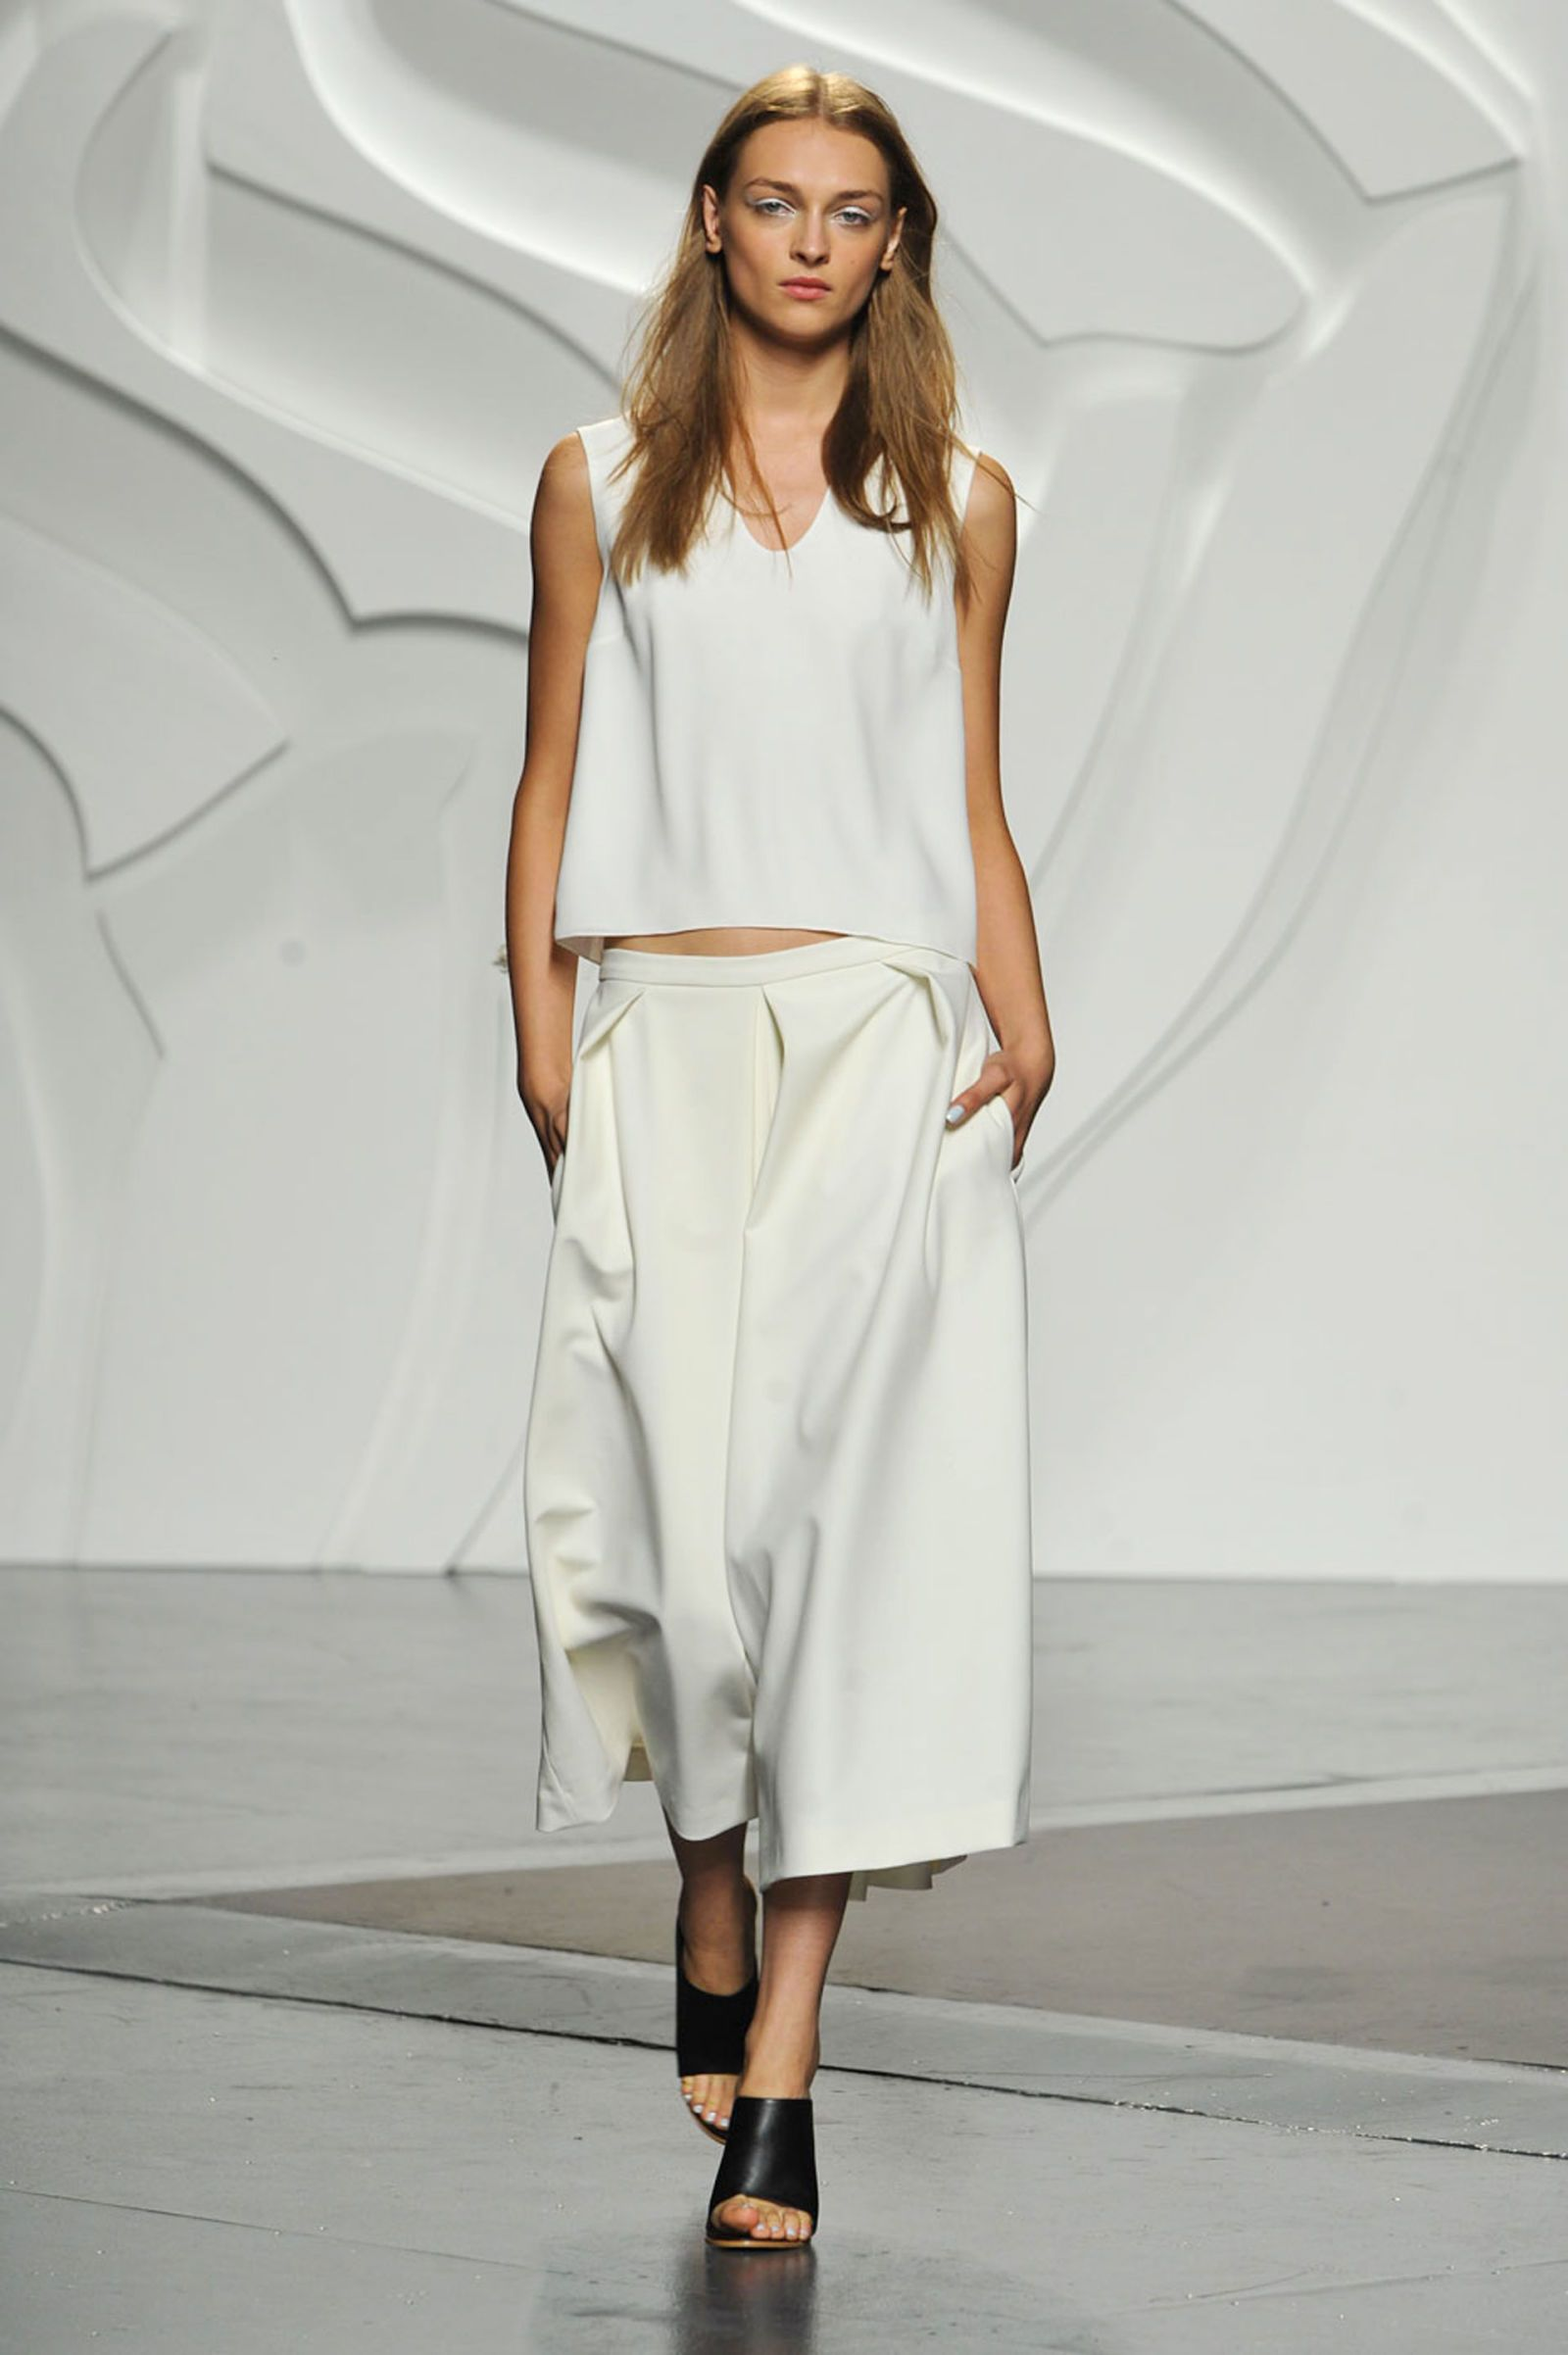 pictures New York Fashion Week SS14: Marie Claire's Top 5 Beauty Looks